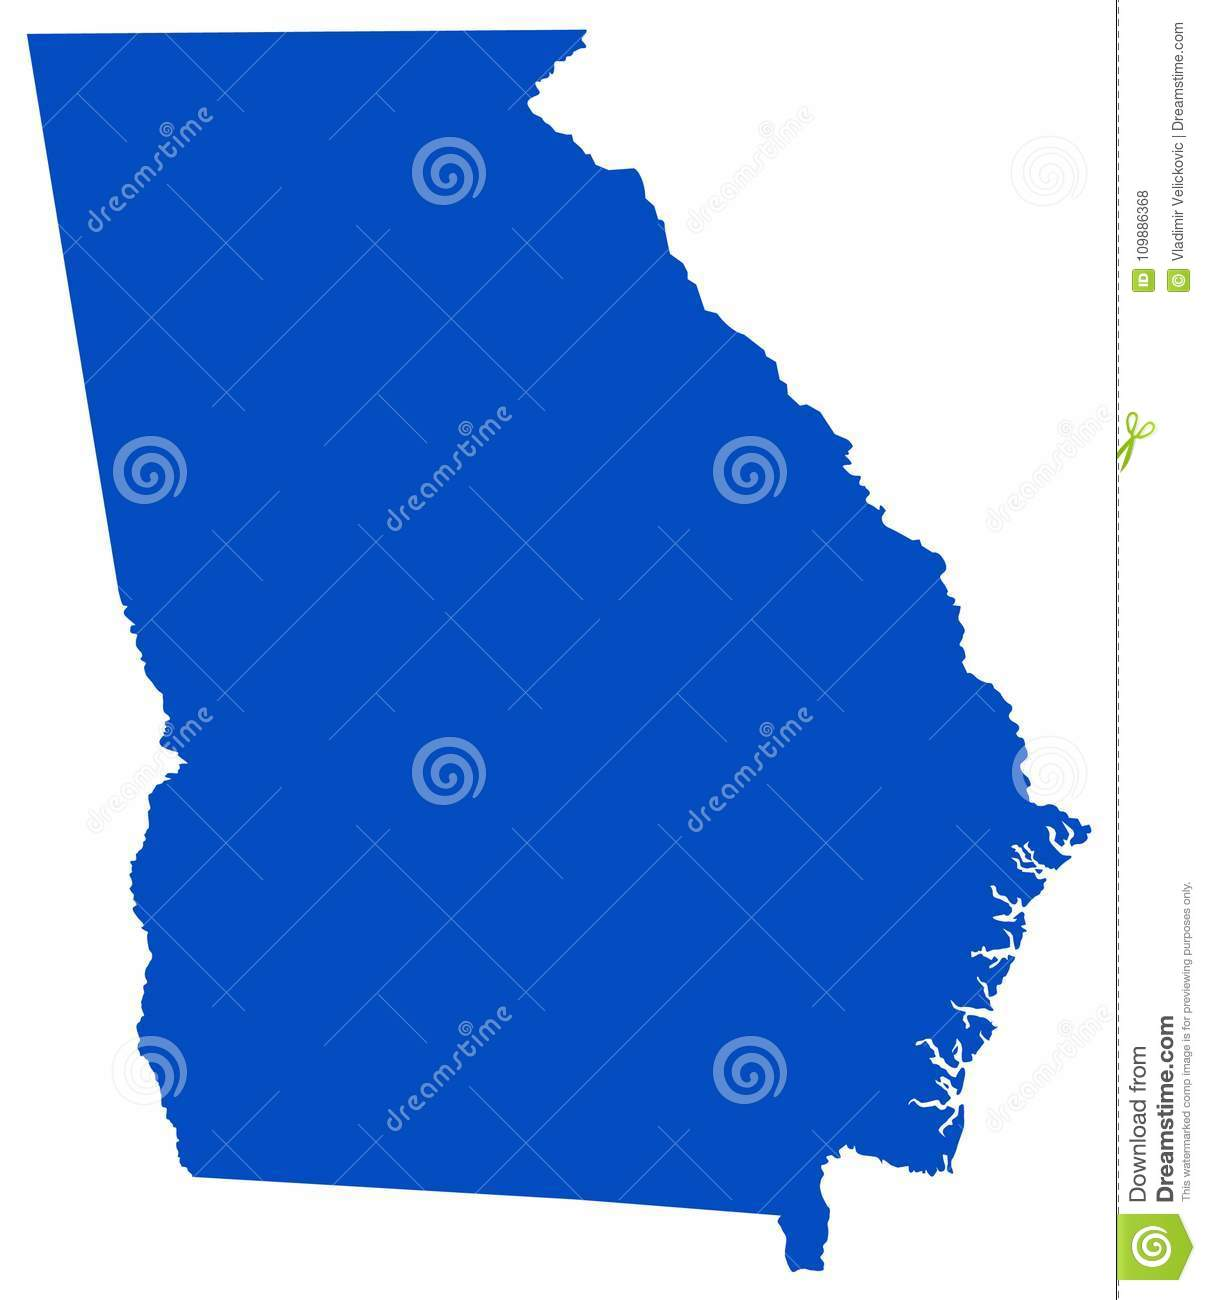 Georgia Map - State In The Southeastern United States Stock Vector ...